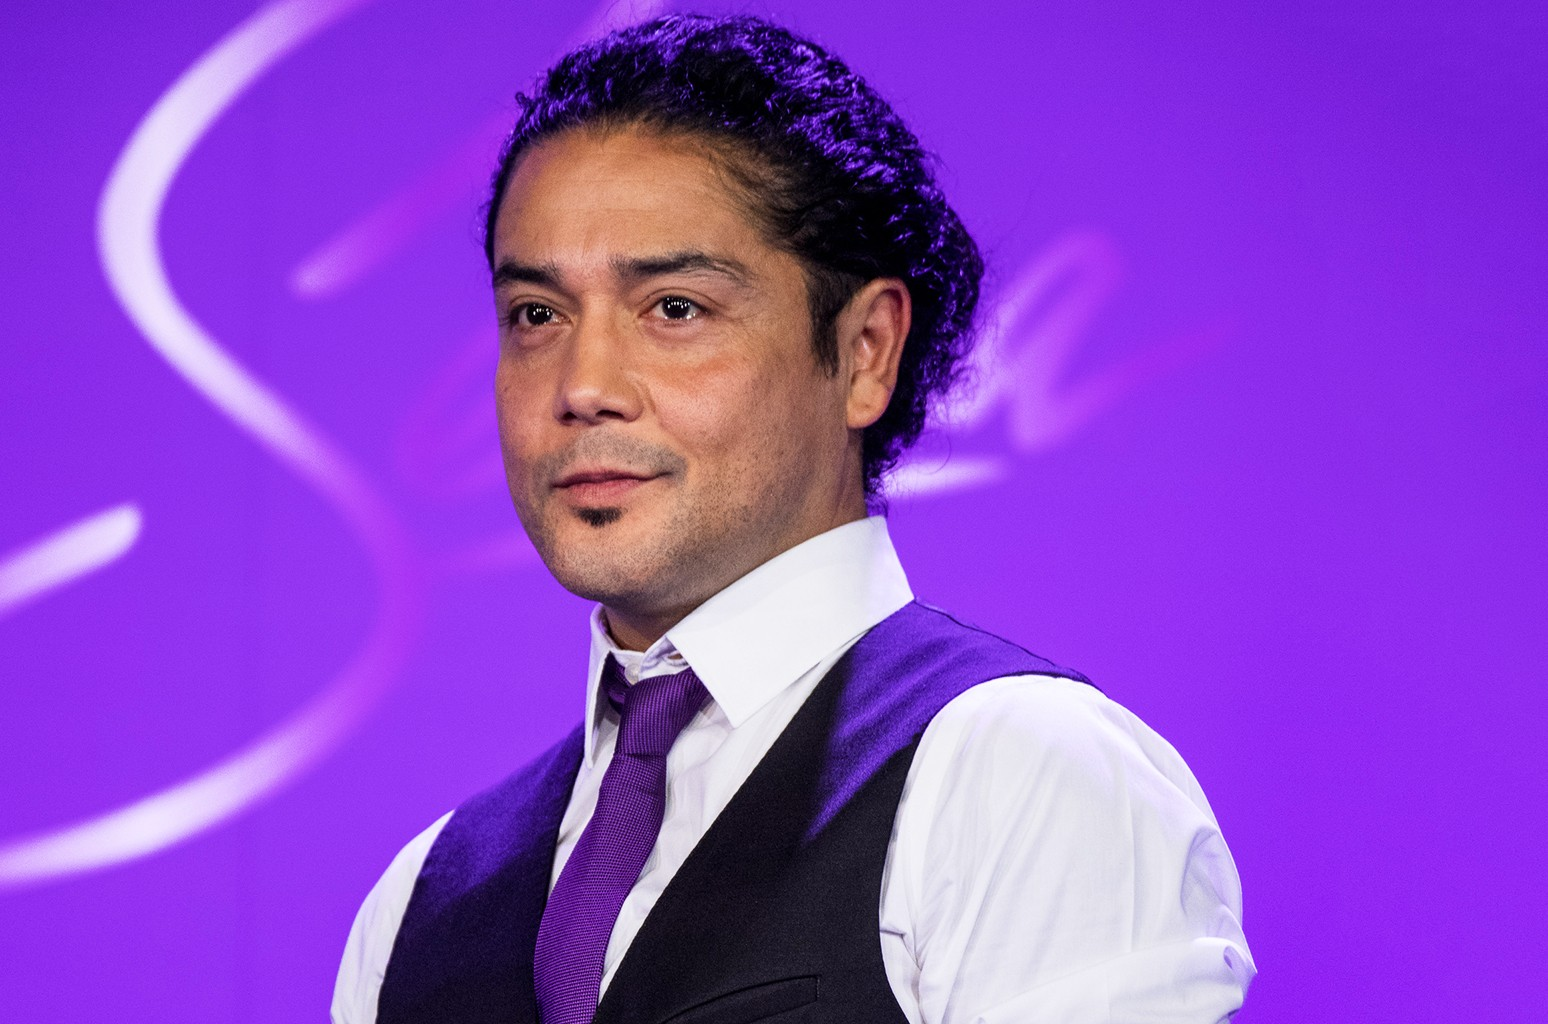 Chris Perez during a press conference before the MAC Selena World Premiere at American Bank Center on Sept. 29, 2016 in Corpus Christi, Texas.